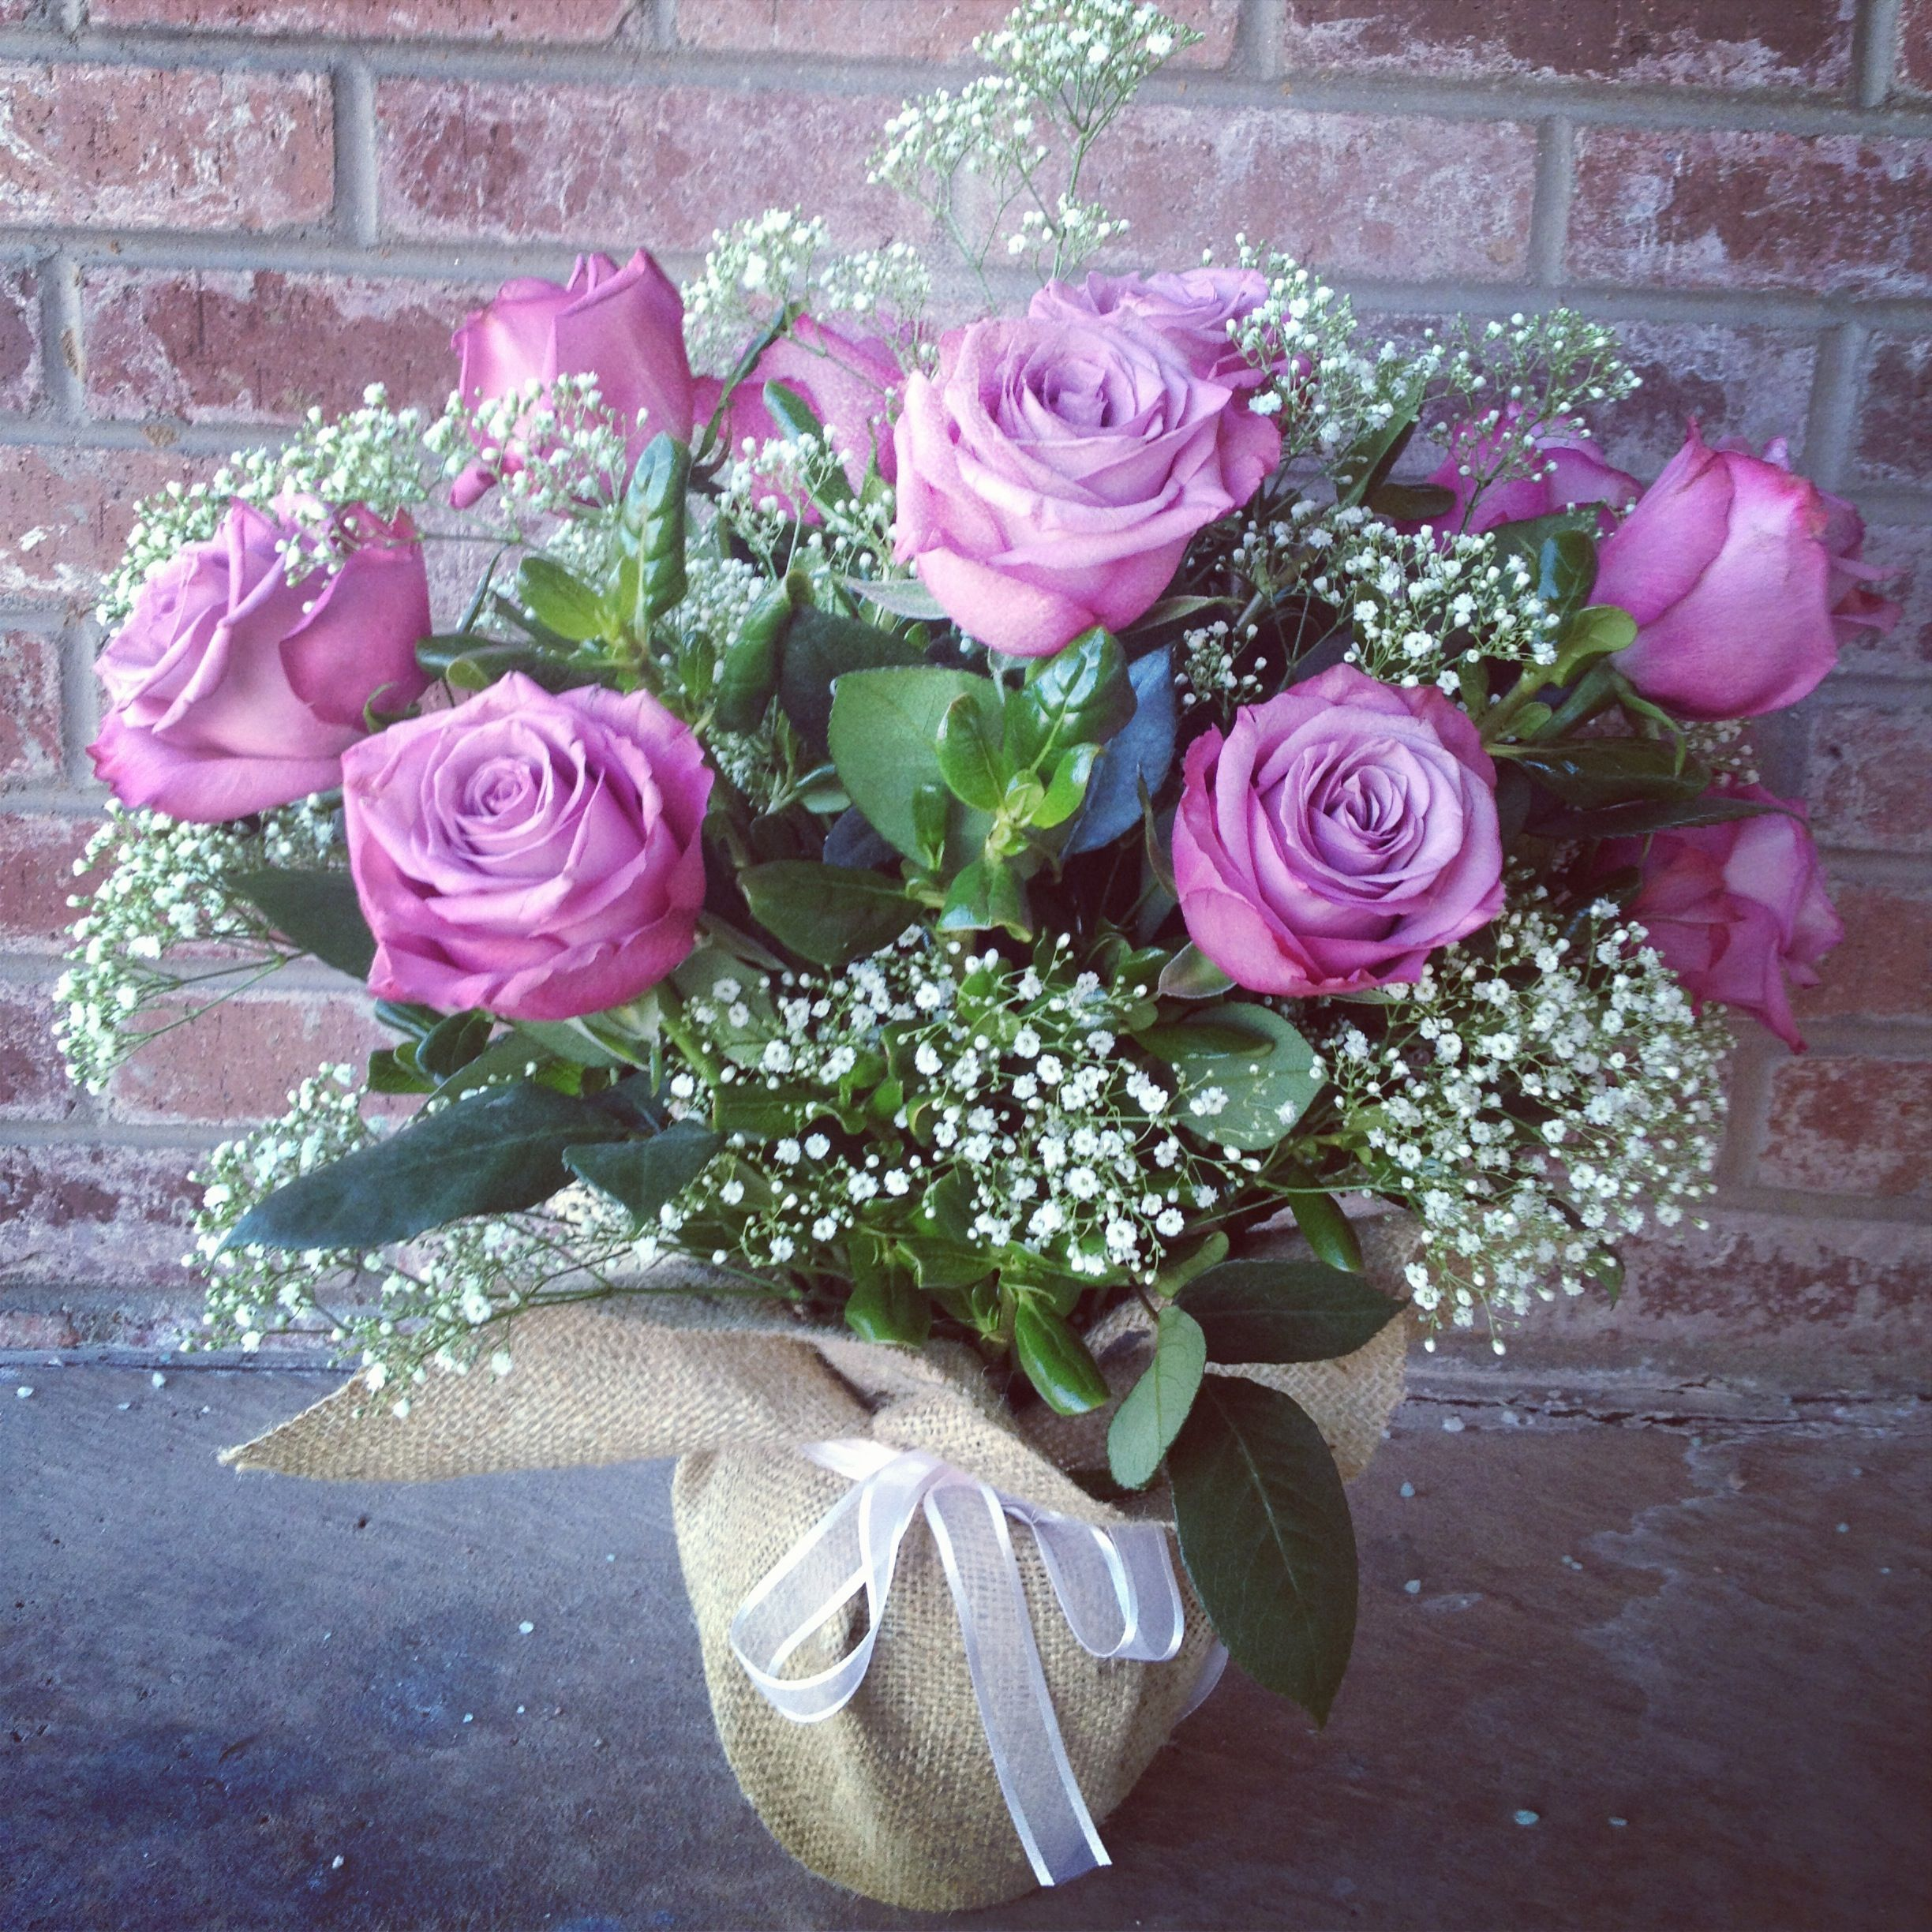 Lavender roses, baby's breath wrapped in burlap